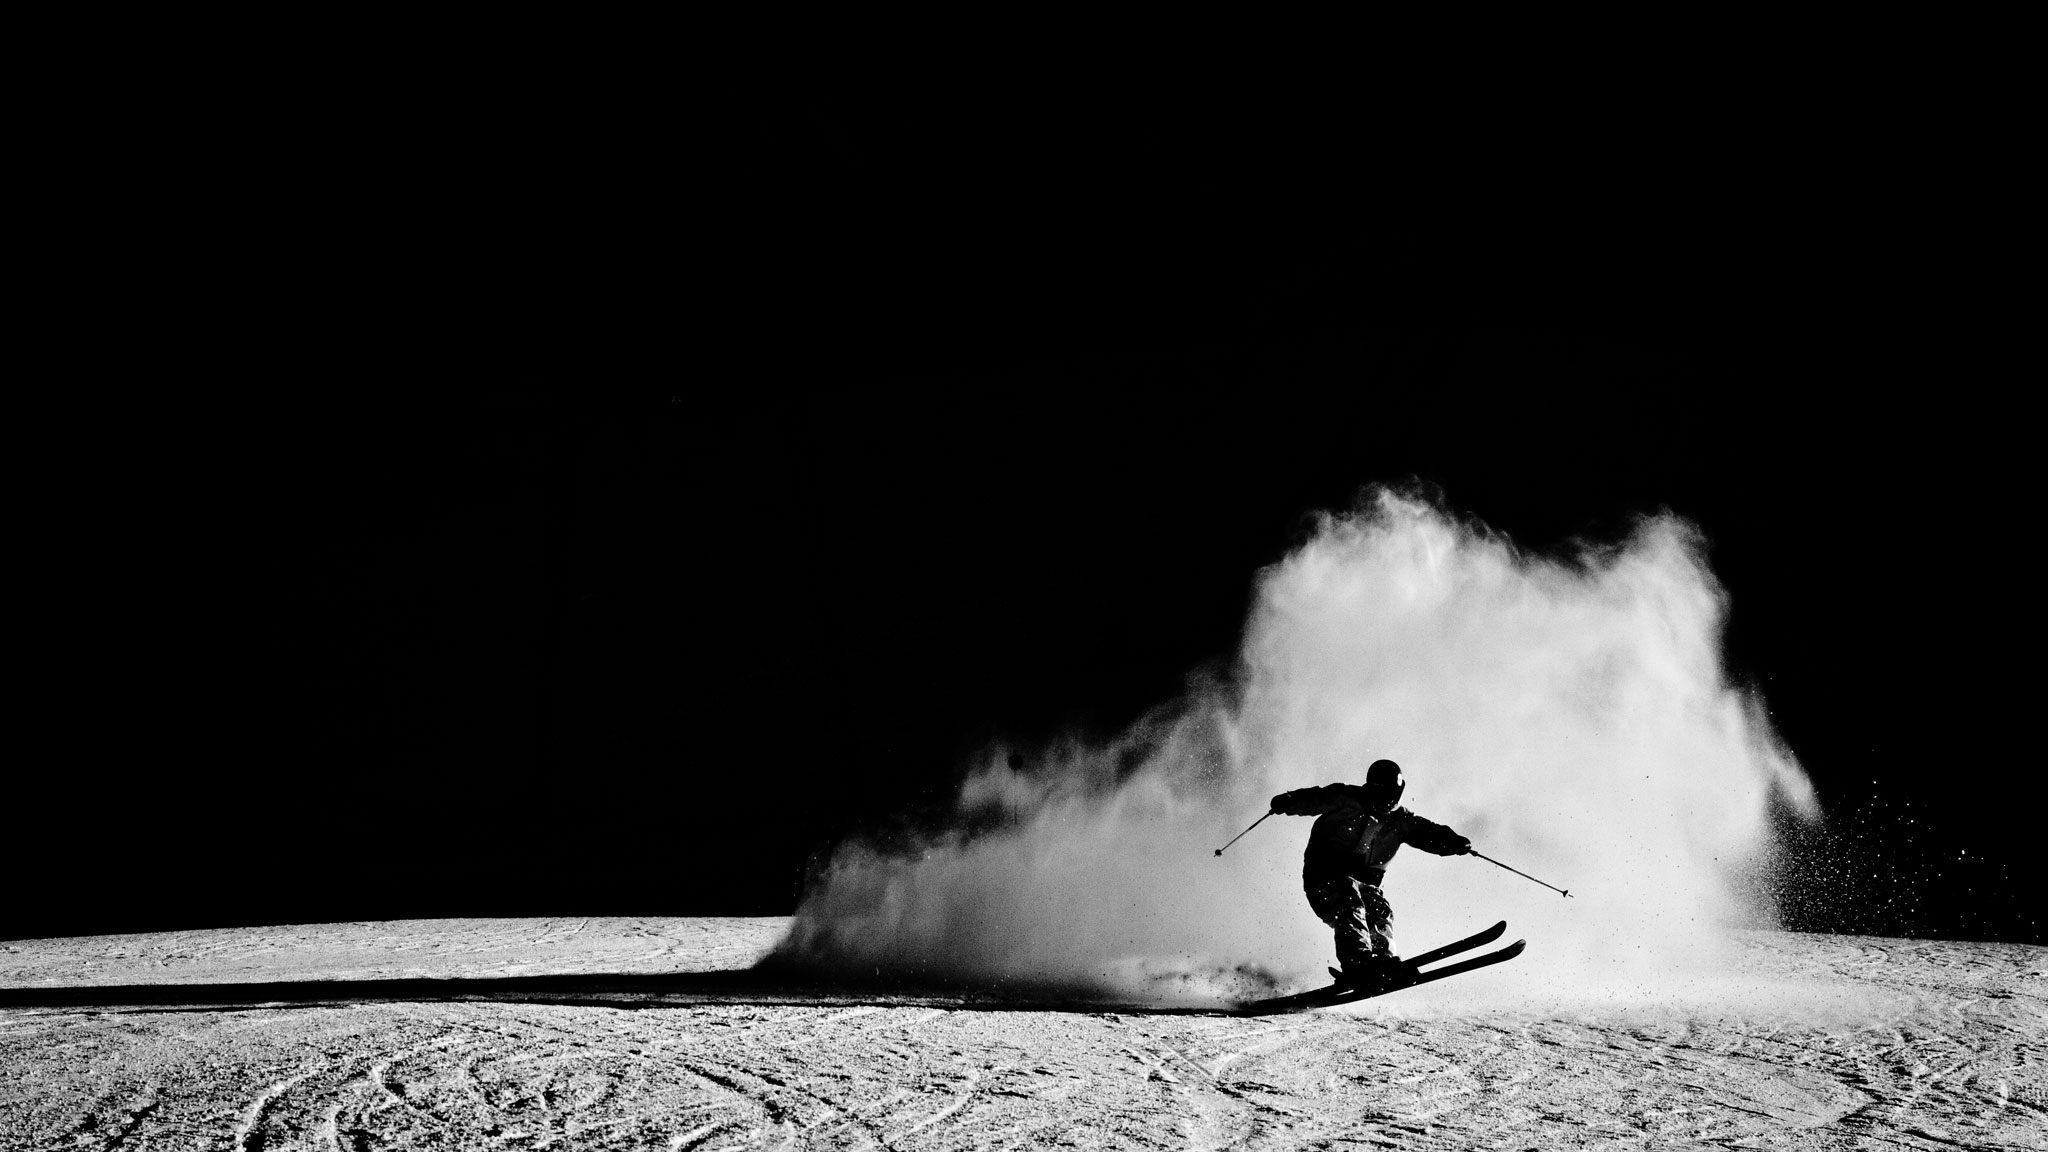 He Skis It All